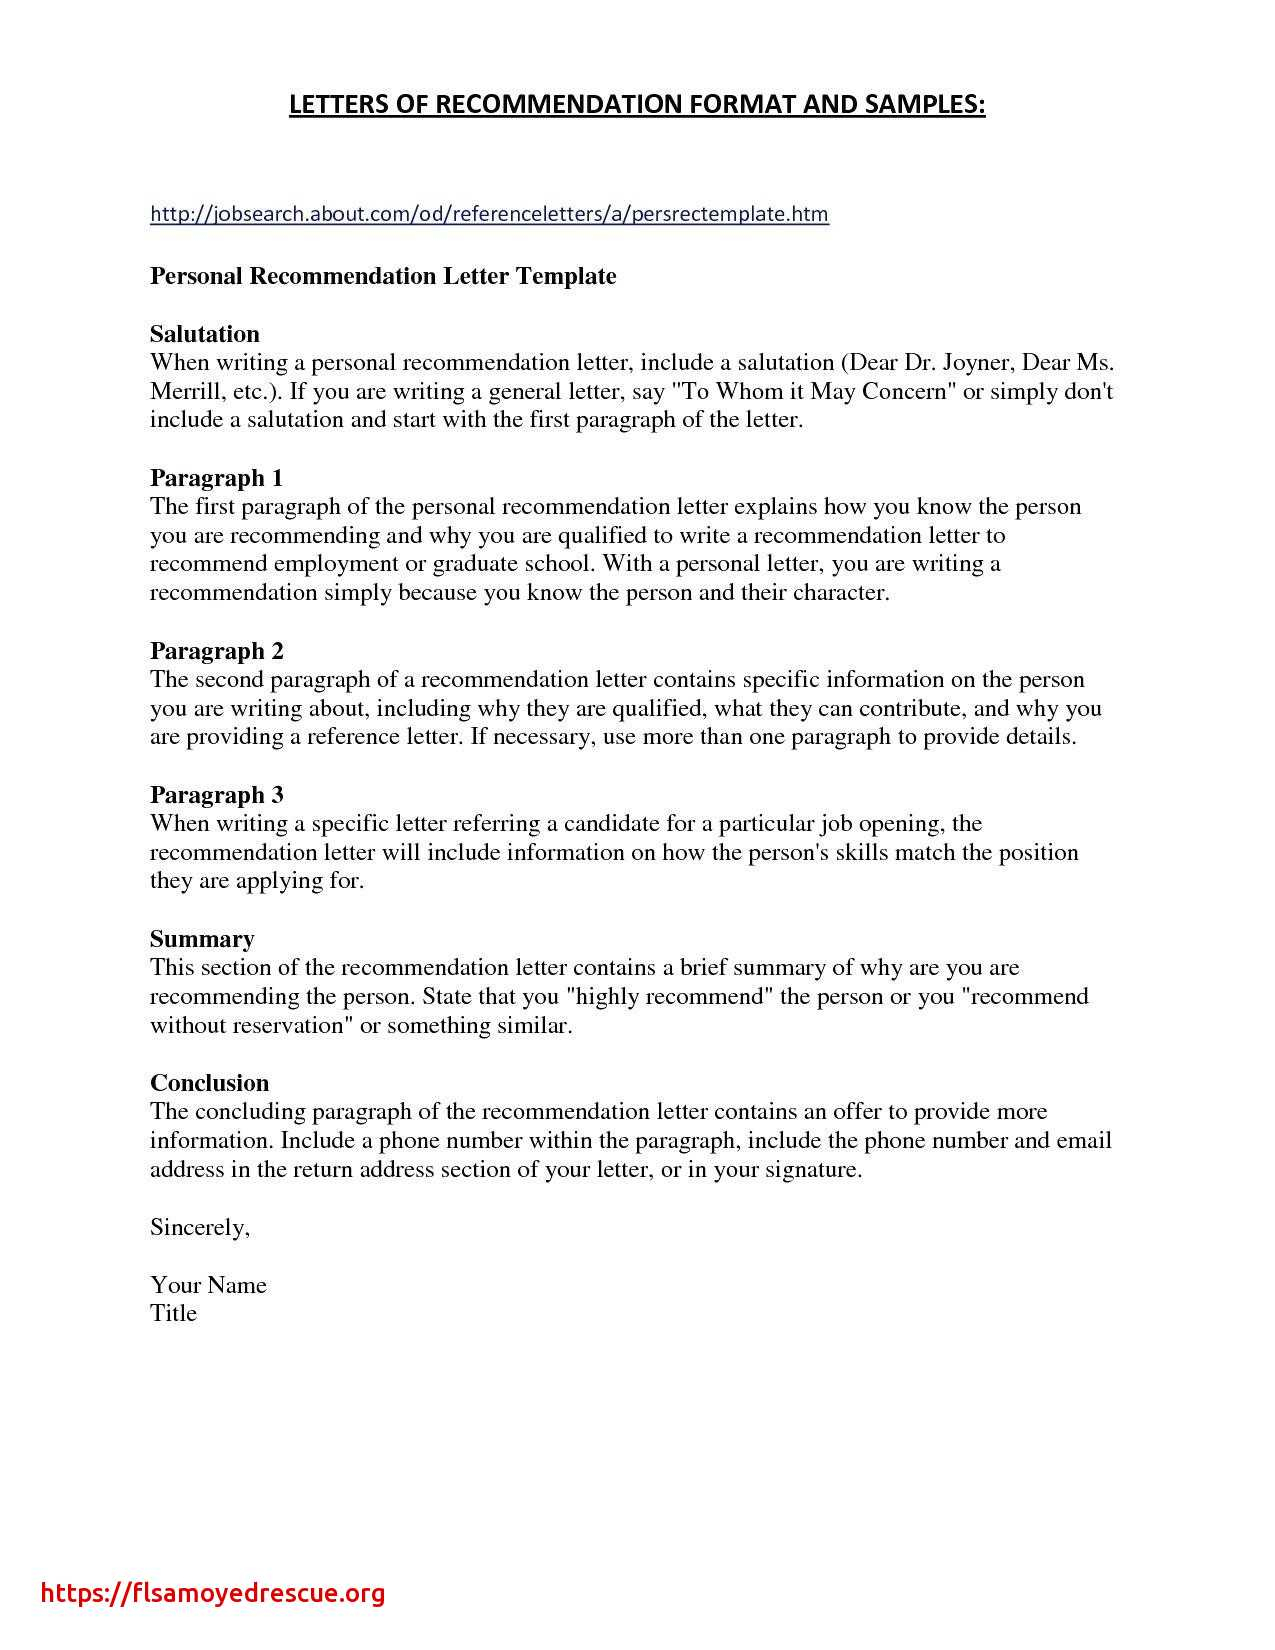 Generic Letter Of Recommendation Template - Character Reference Letter Template Doc New Writing Letter Reference